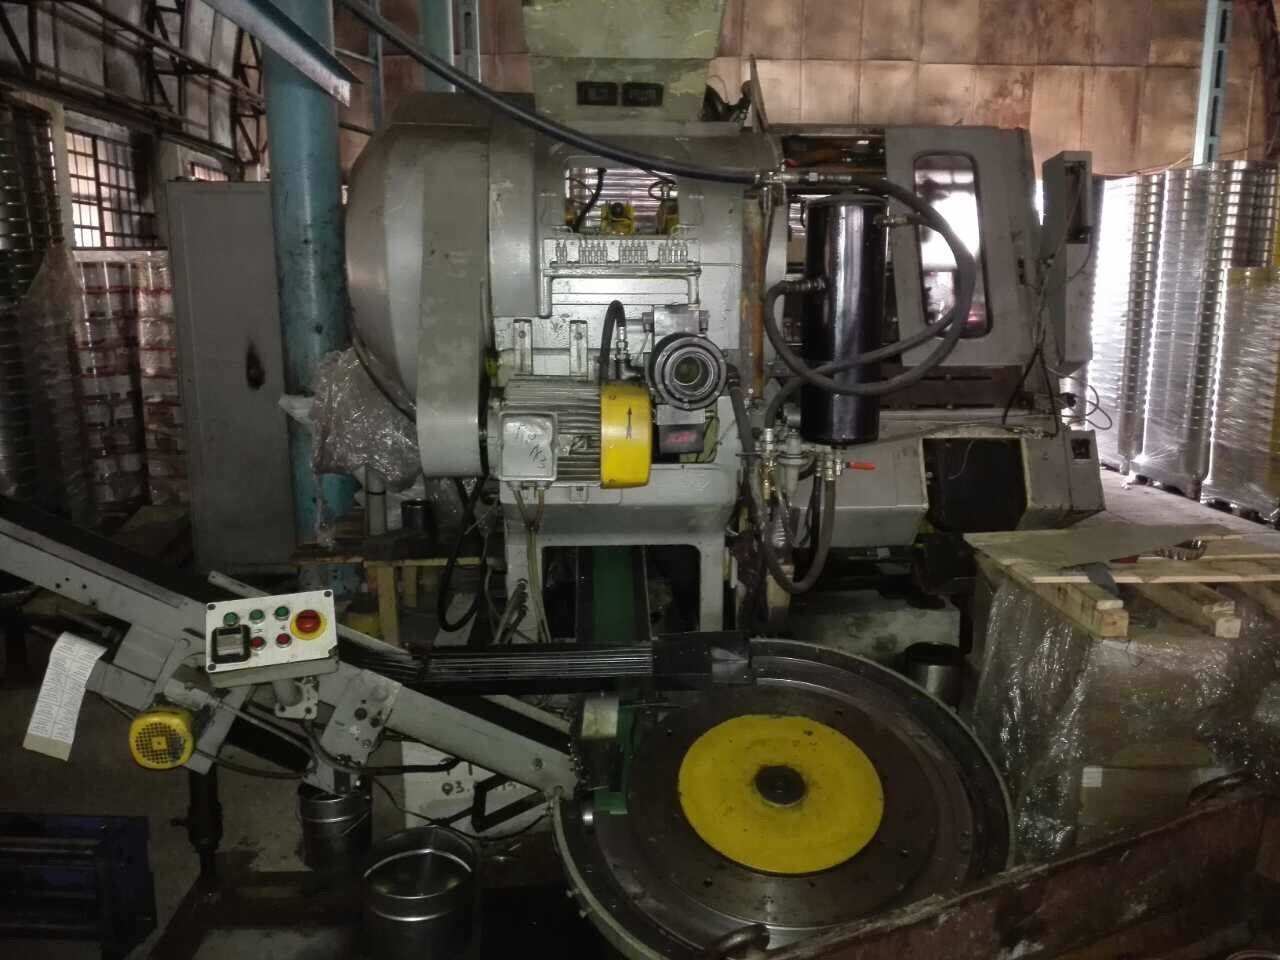 Blema PKXD 40.3-2 stripfeed press - disc curler